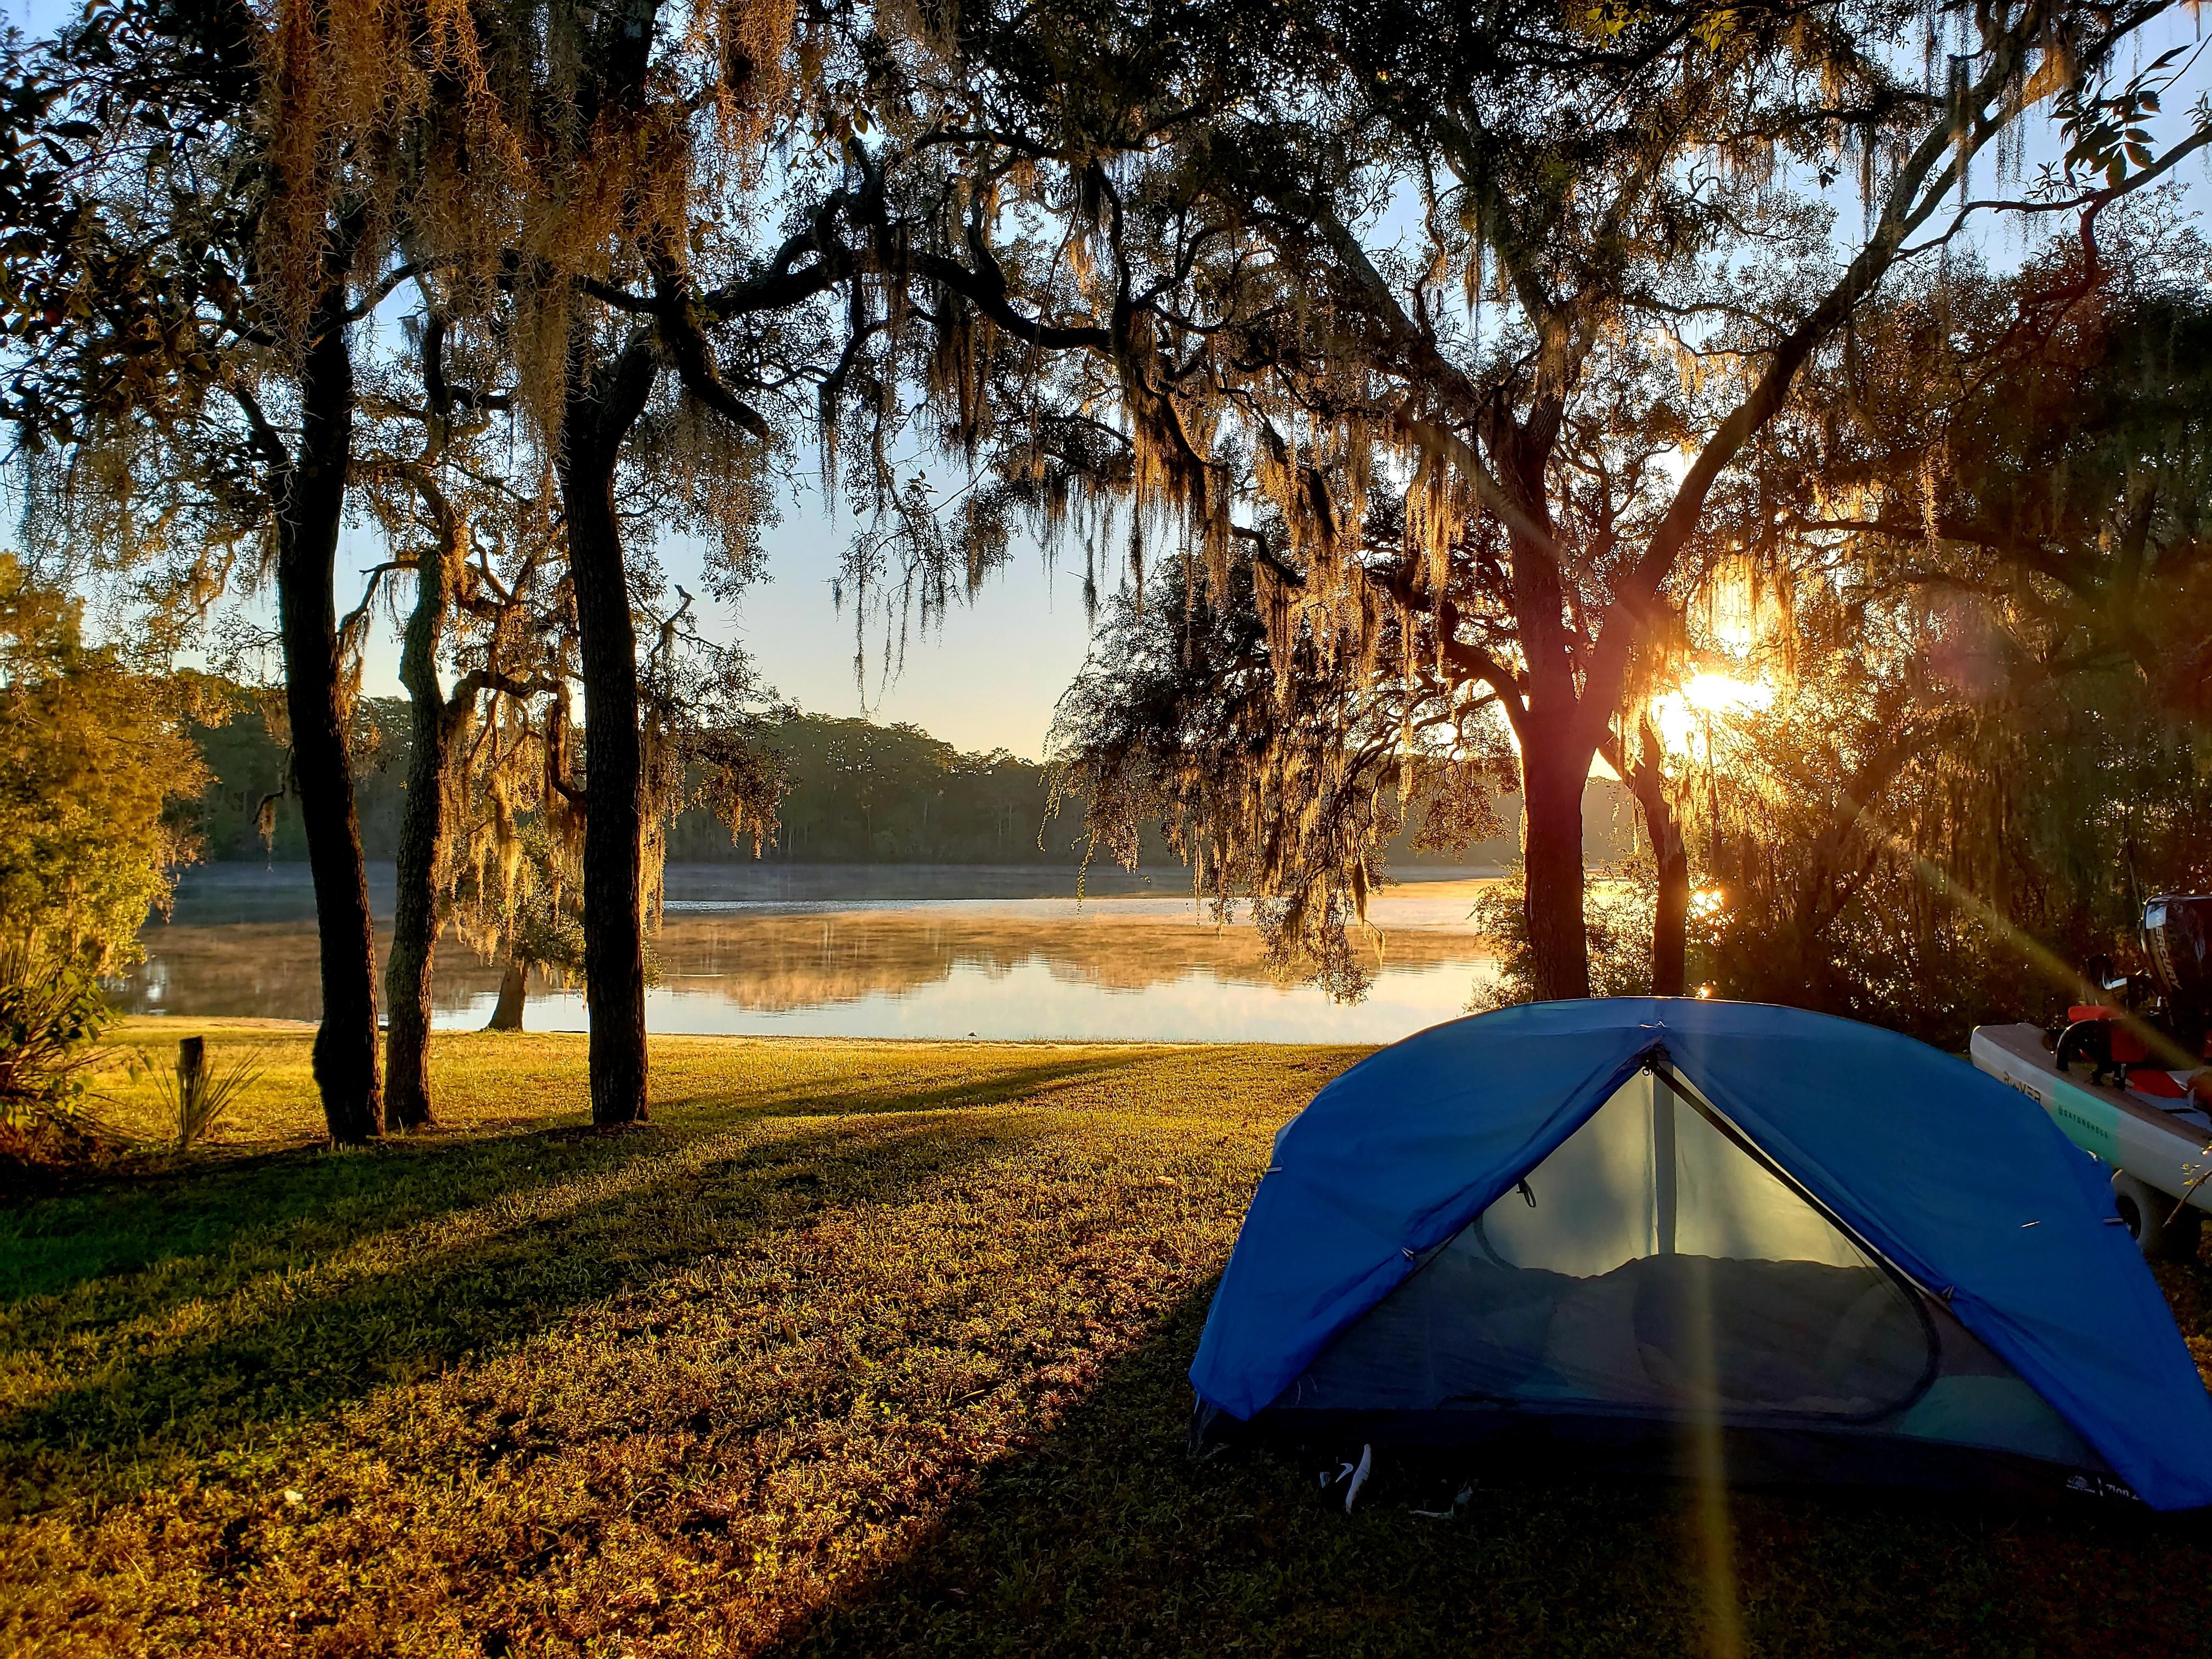 Pin by Dan Adventurer on Camping   Camping equipment rental, Best